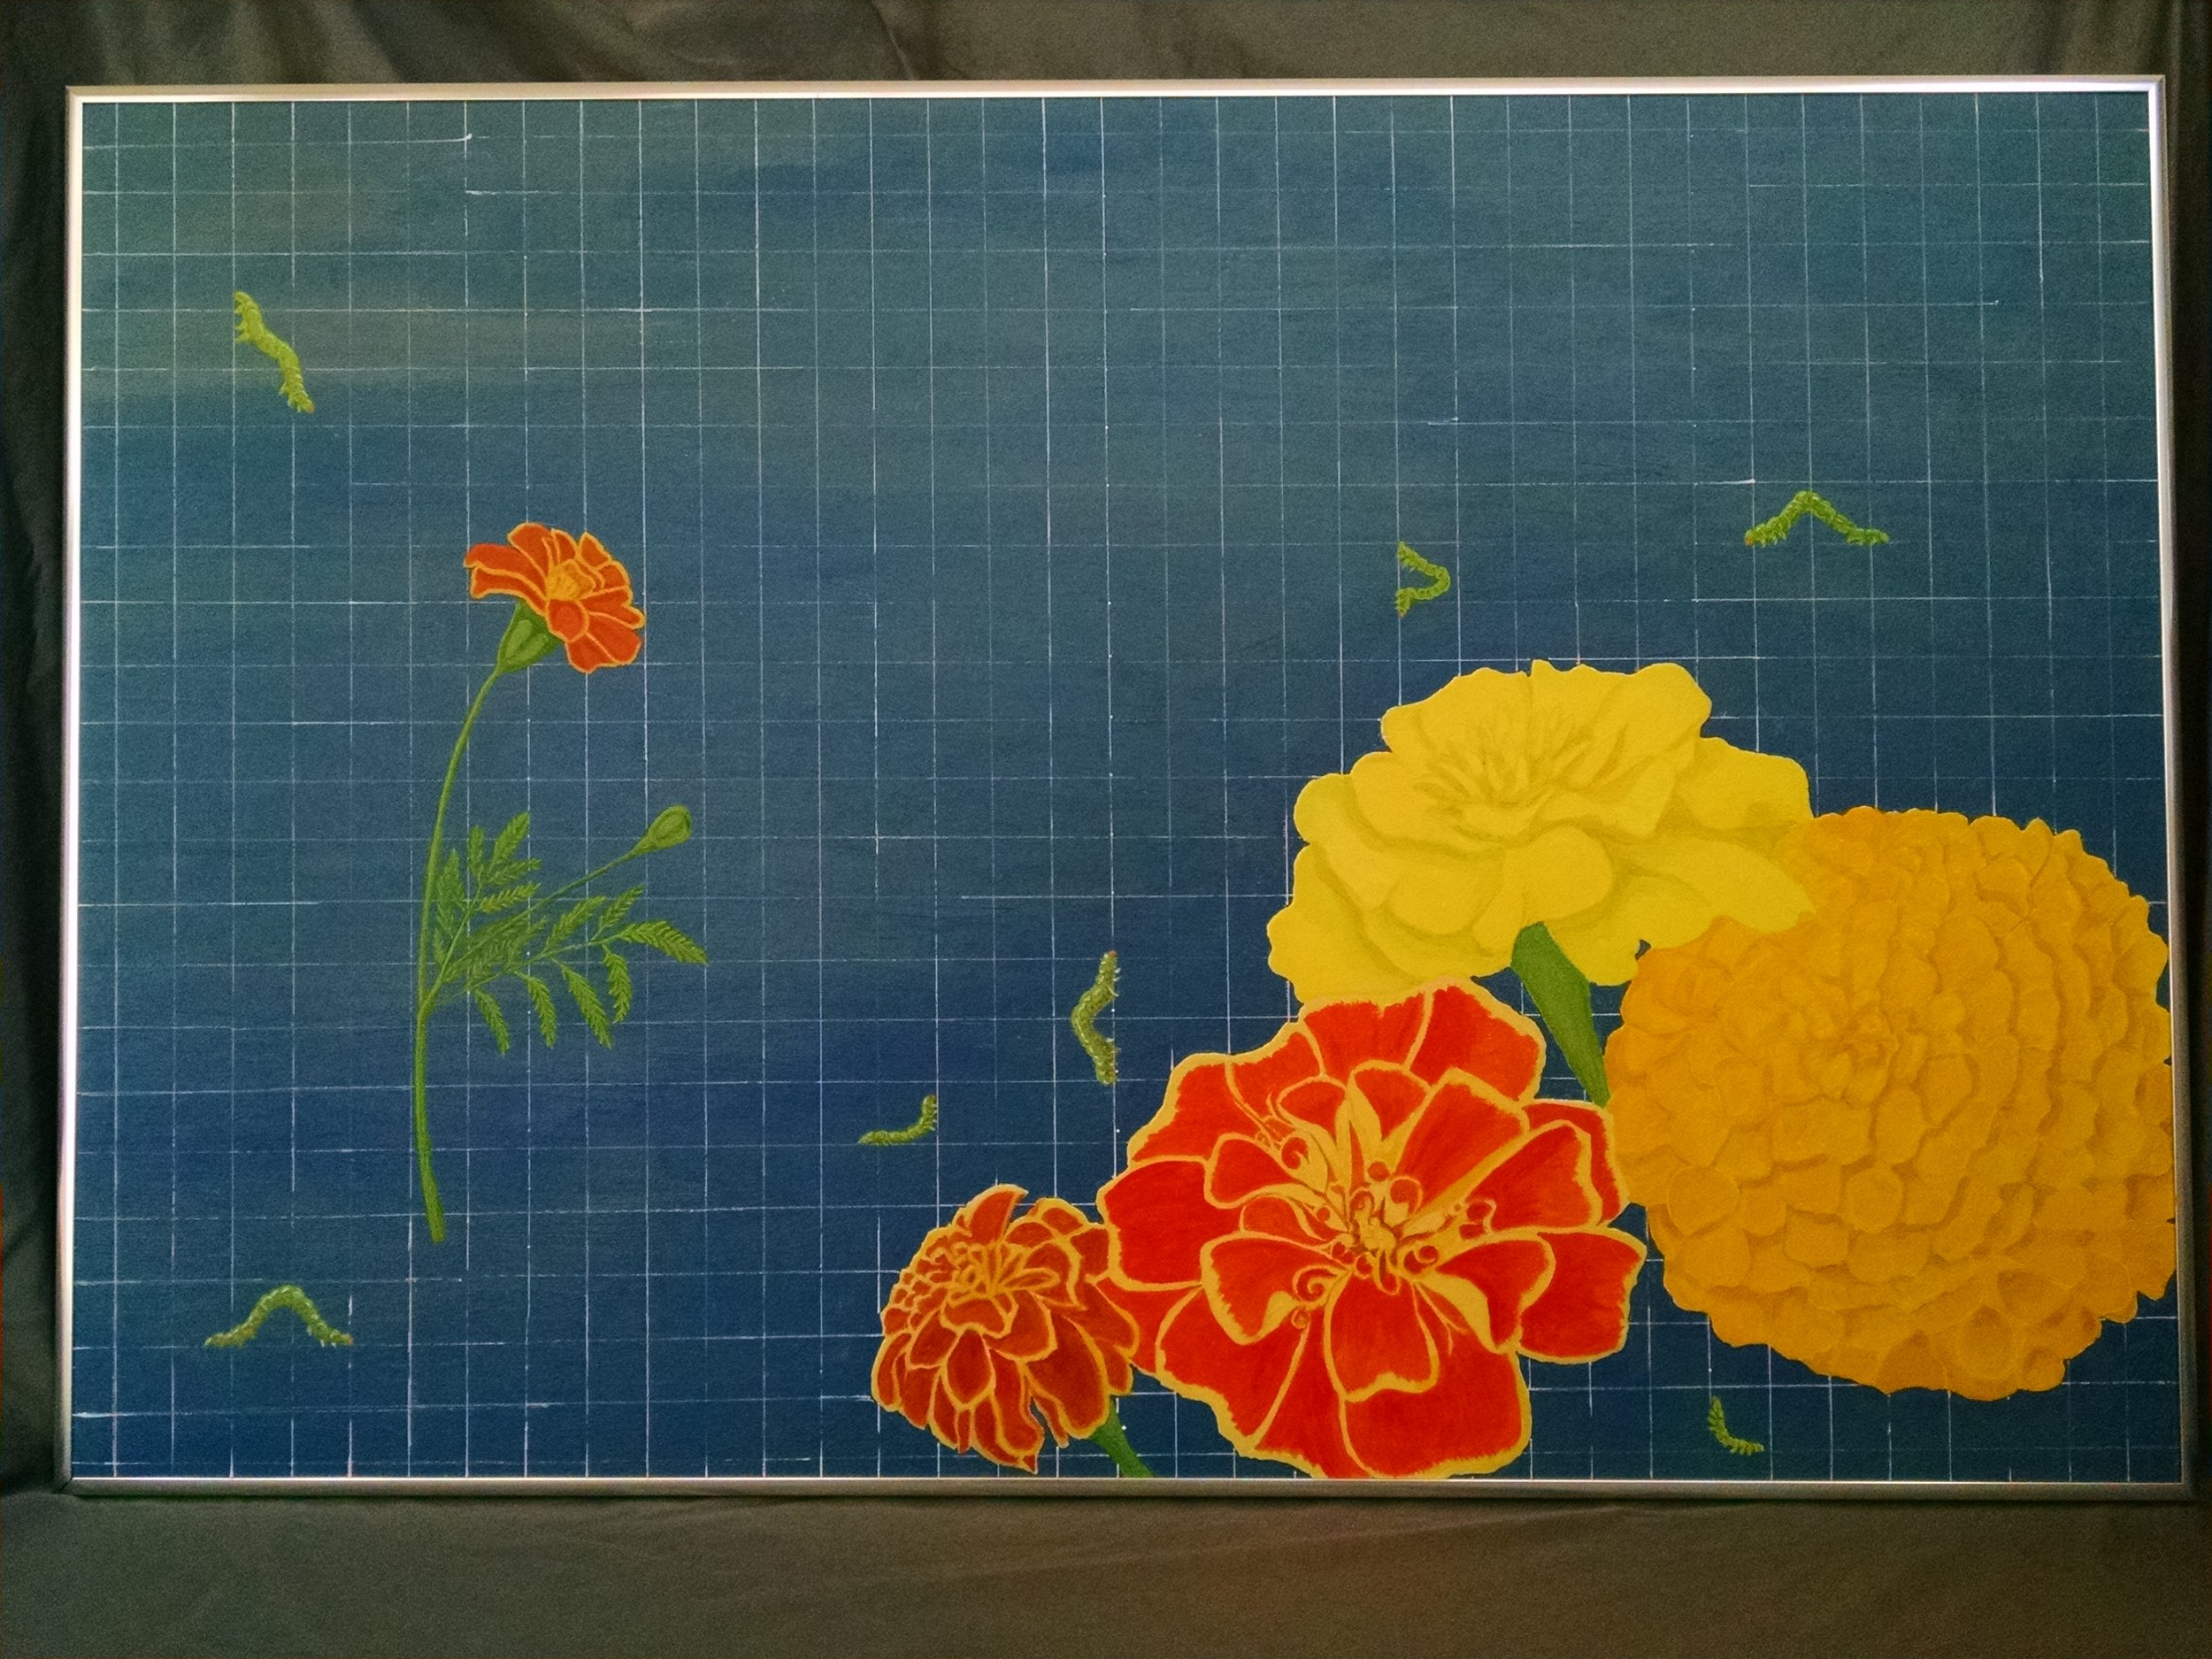 Measuring the Marigolds